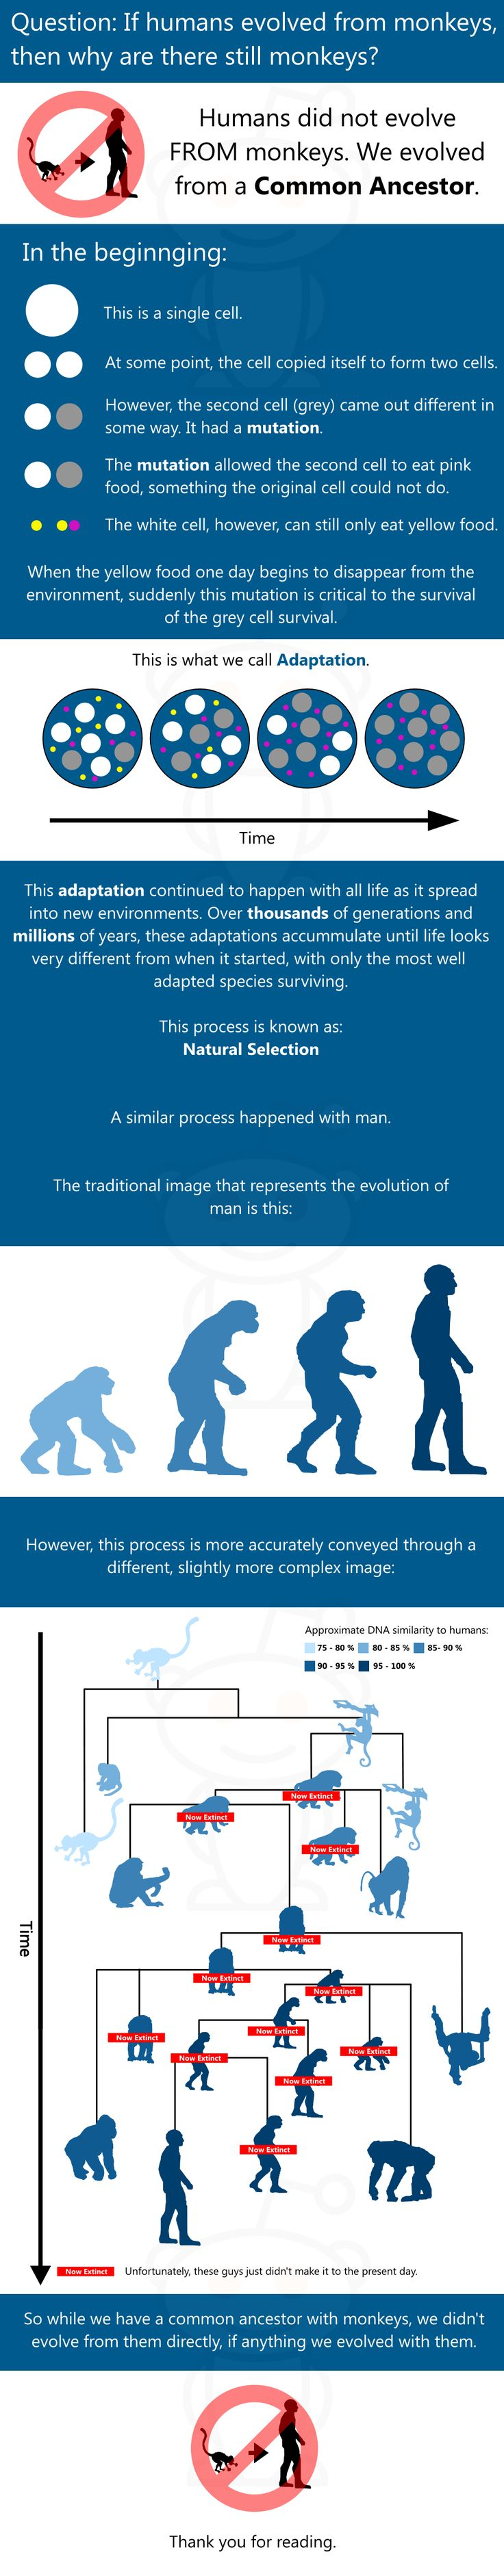 If humans evolved from monkeys, then why are there still monkeys ???